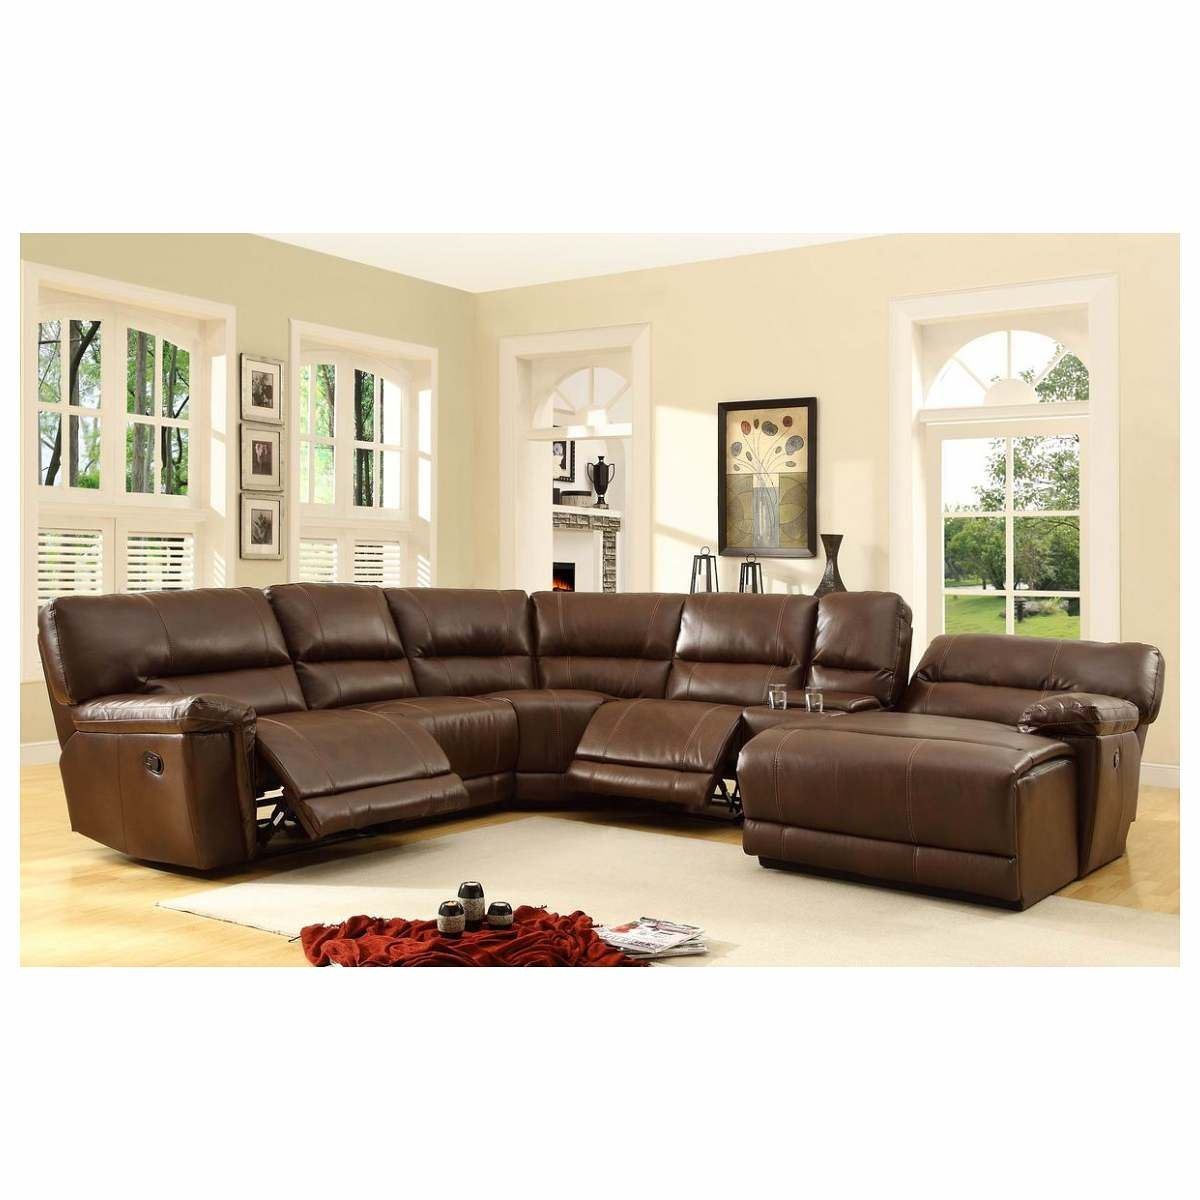 Bonded Leather Reclining Sofa Set Slipcovers Wingback Sofas 6 Pc Blythe Collection Brown Match